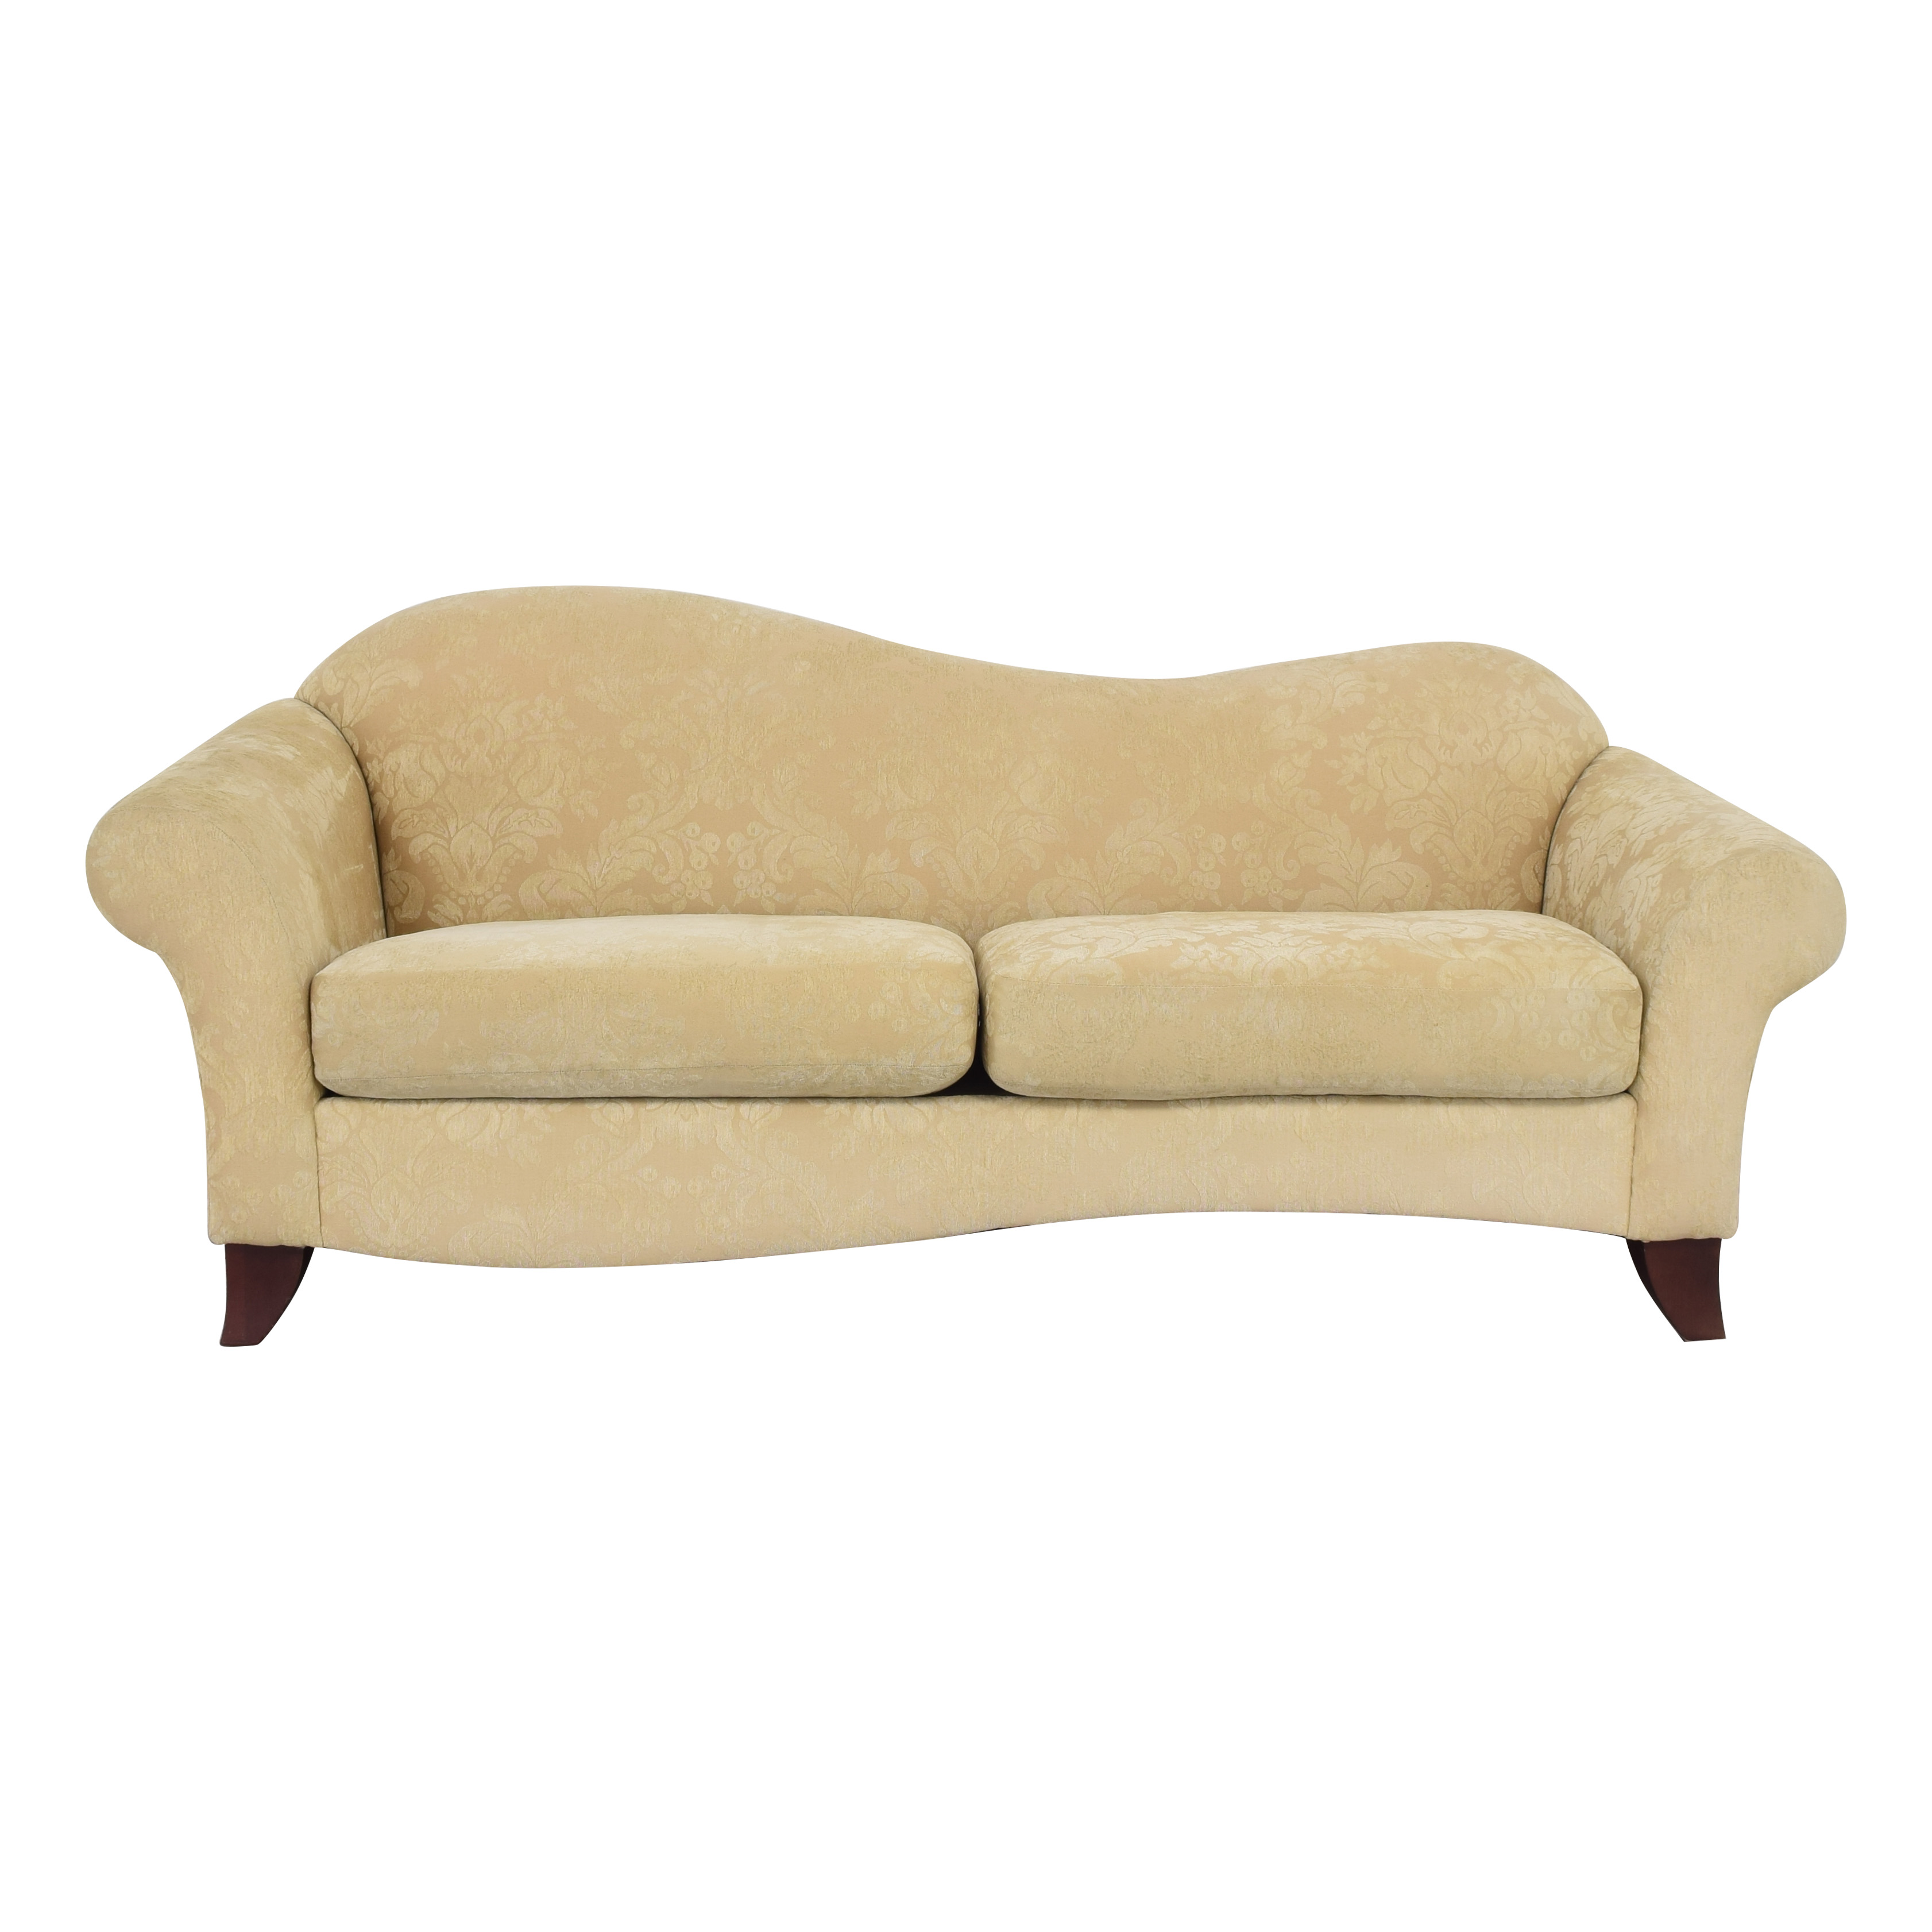 Macy's Macy's Two Cushion Sofa discount